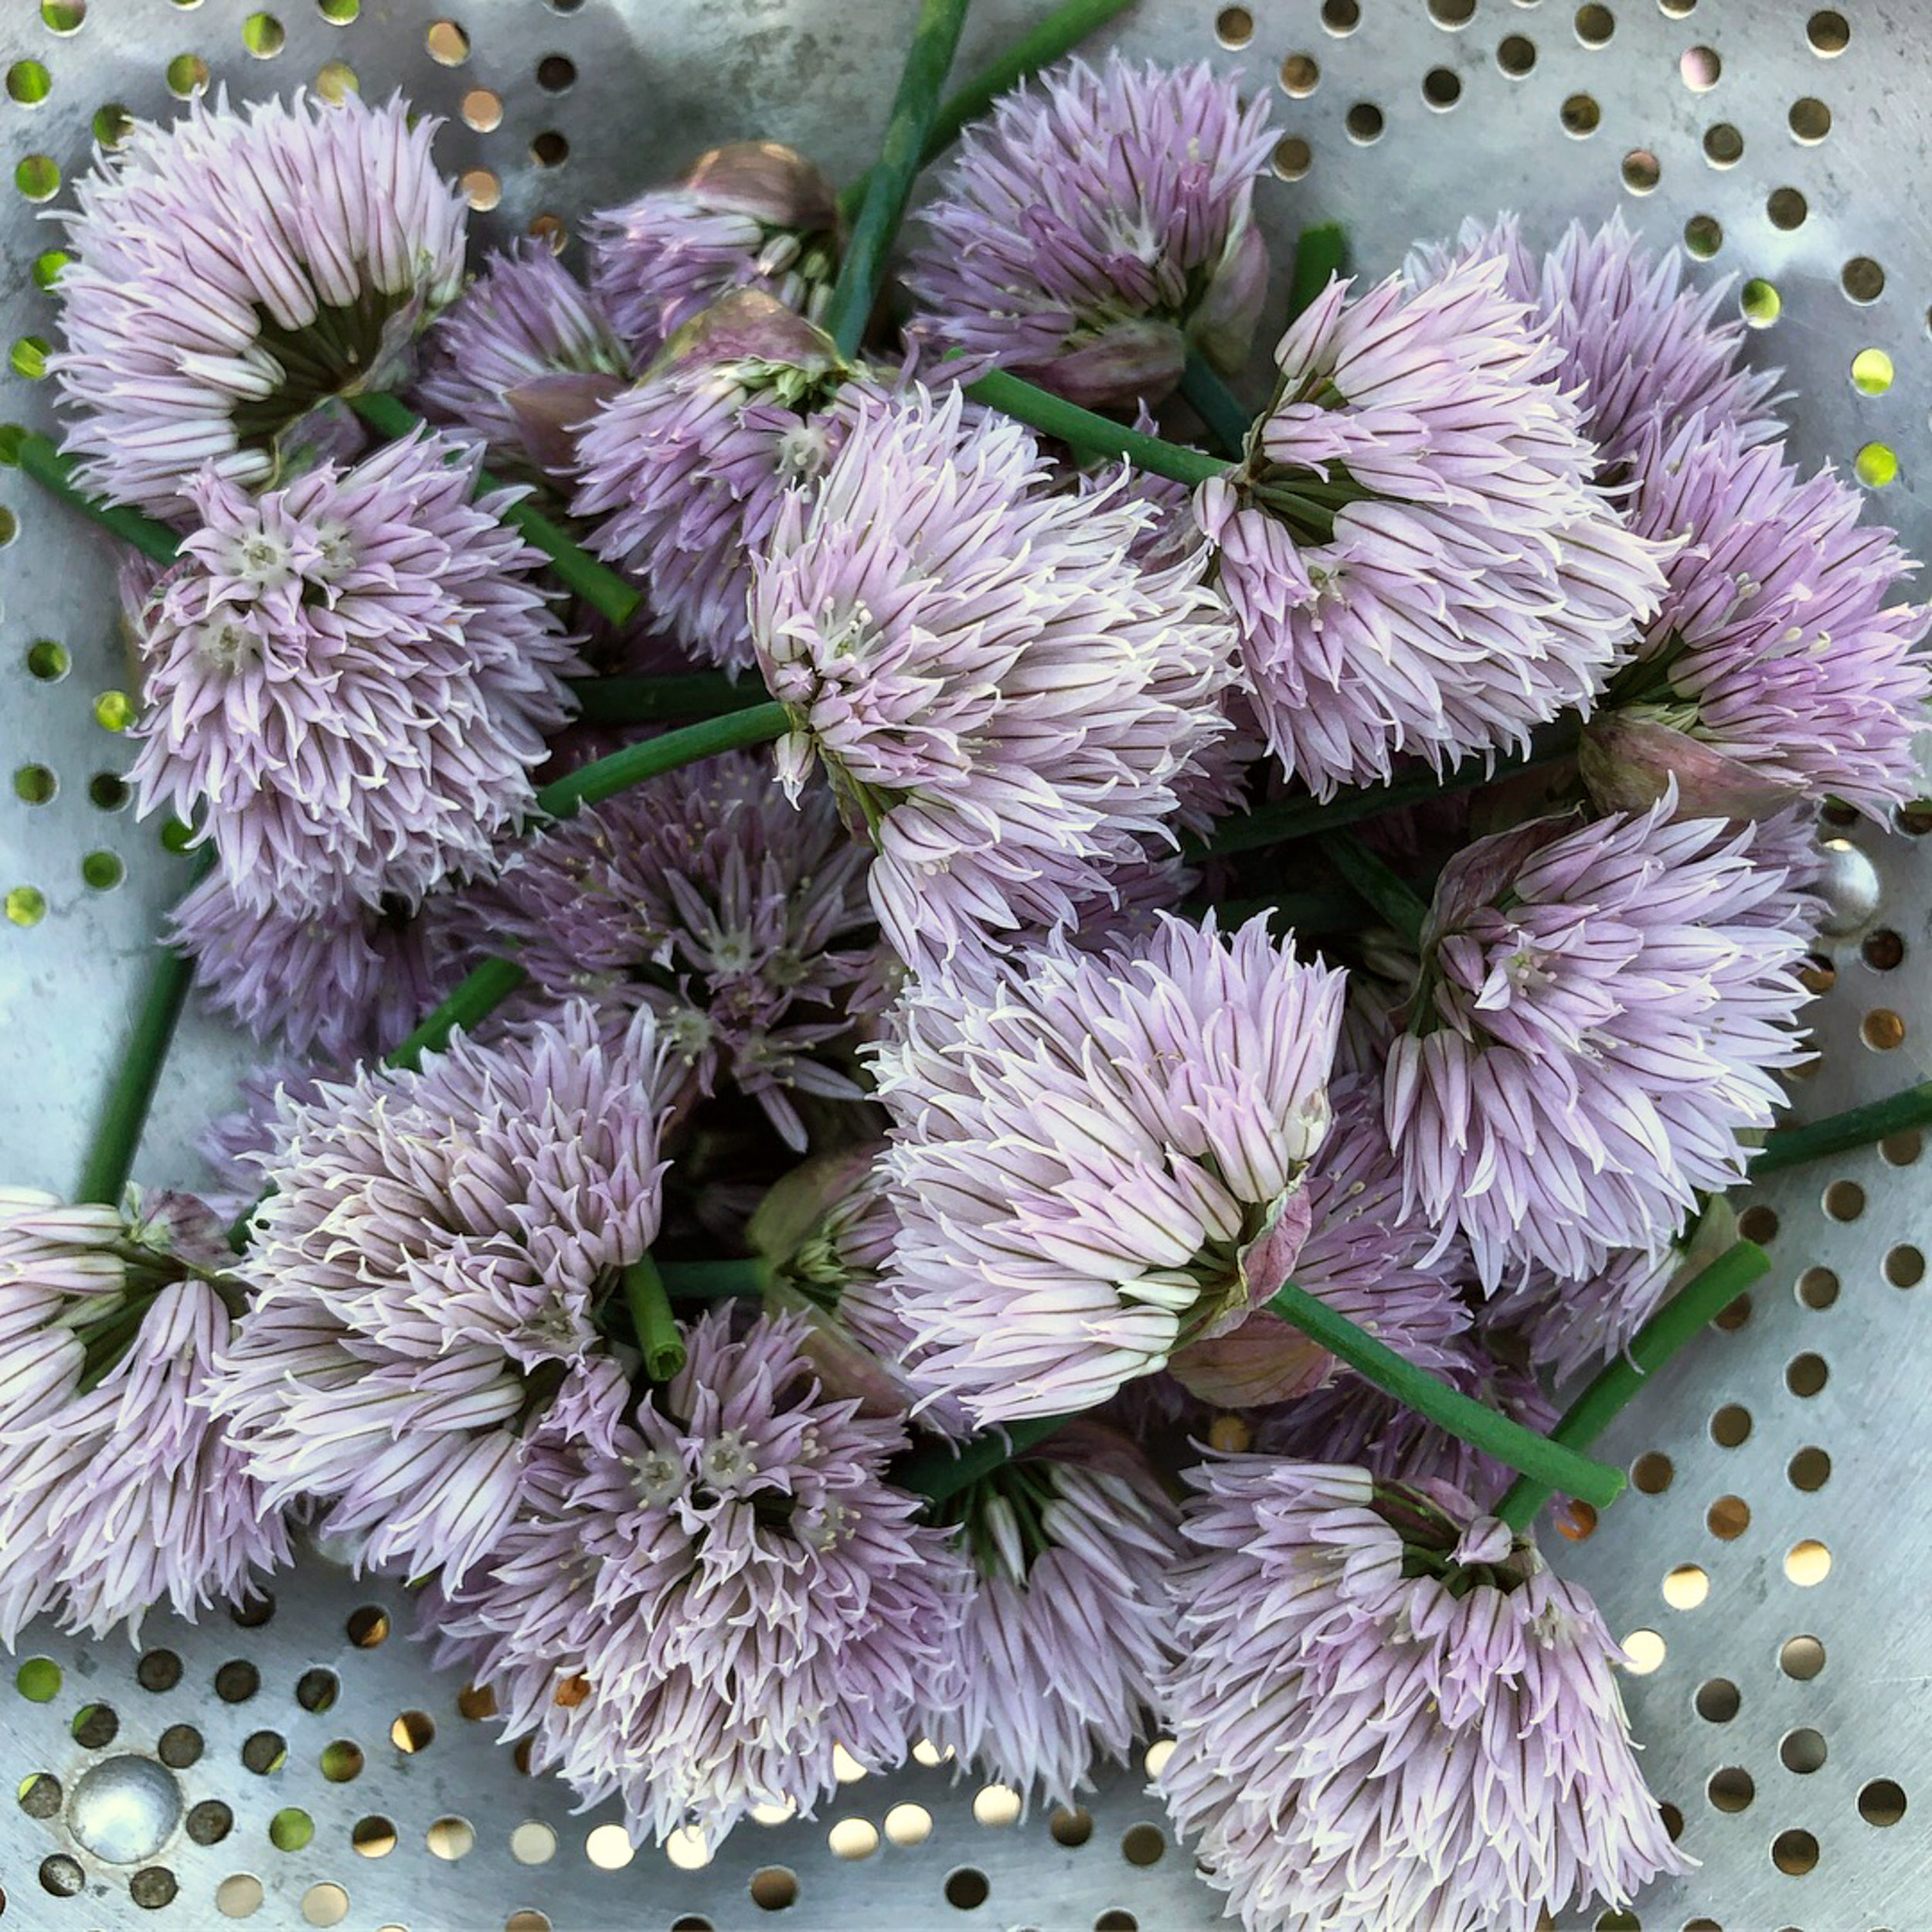 I Harvested Chive Flowers to Infuse in Vinegar